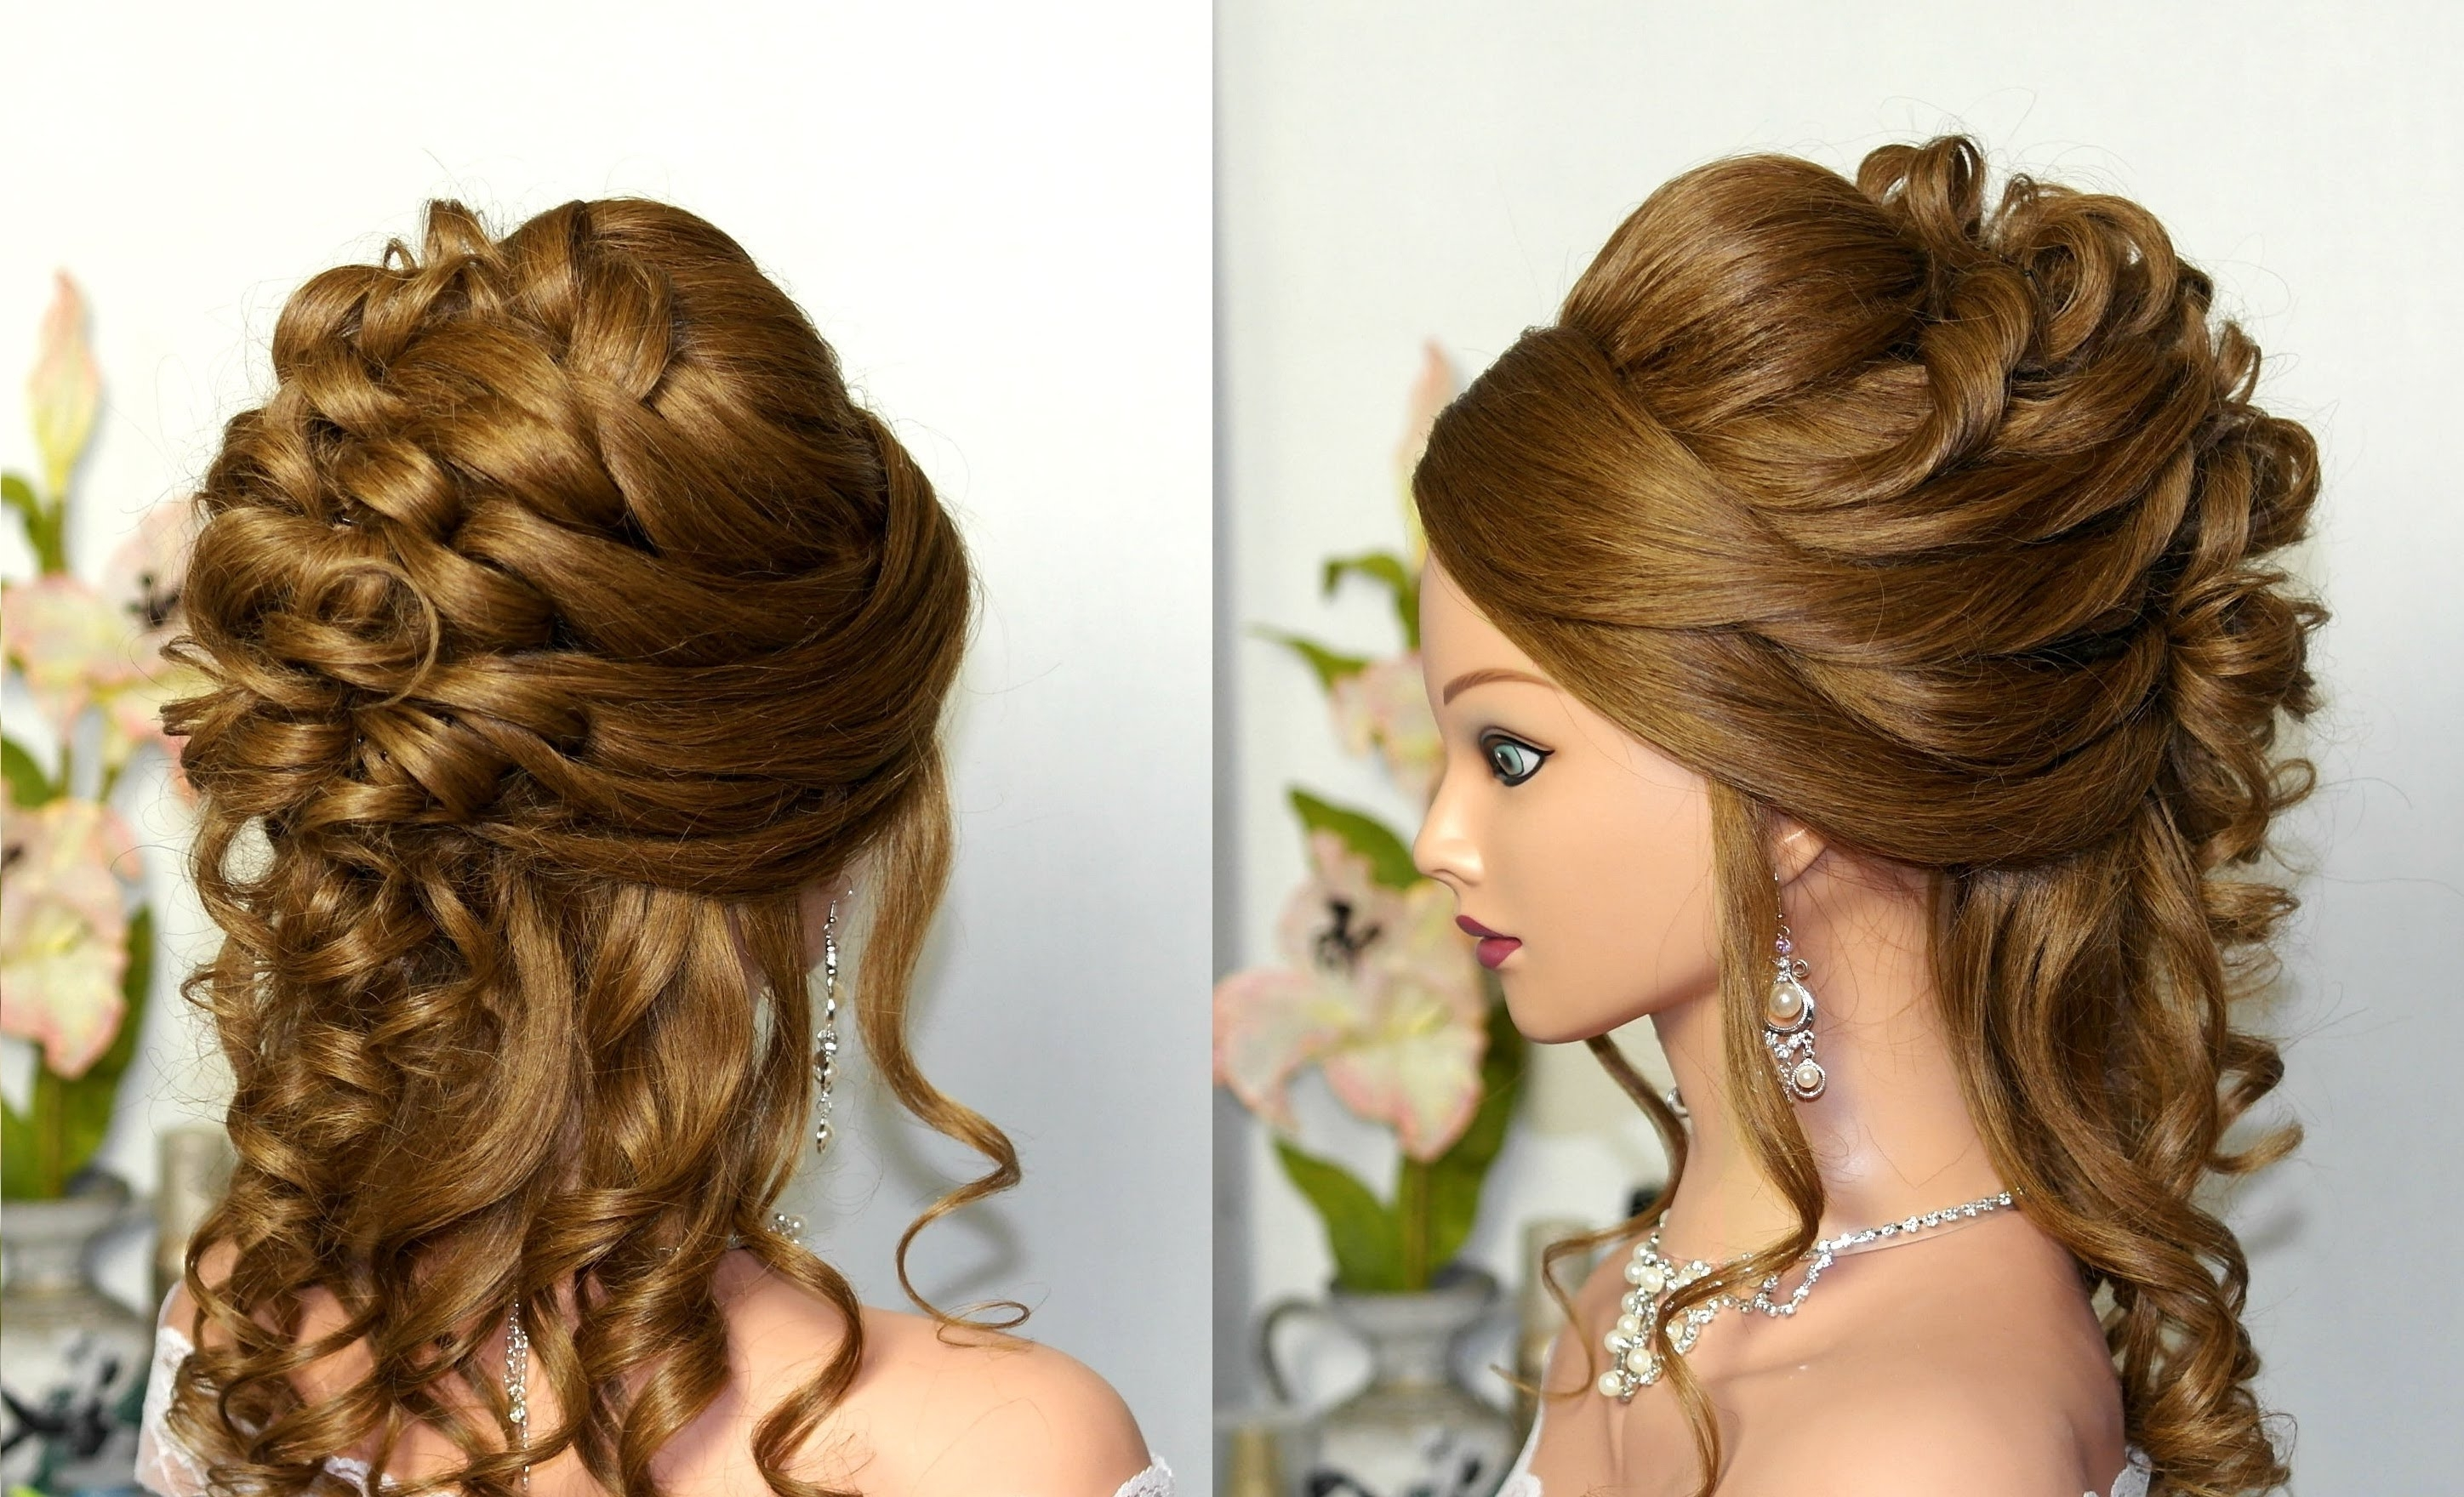 Fancy Hairstyles For Long Hairstyle Hair Tutorial Cute Prom Updo With Trendy Updo Hairstyles For Long Hair (View 2 of 15)